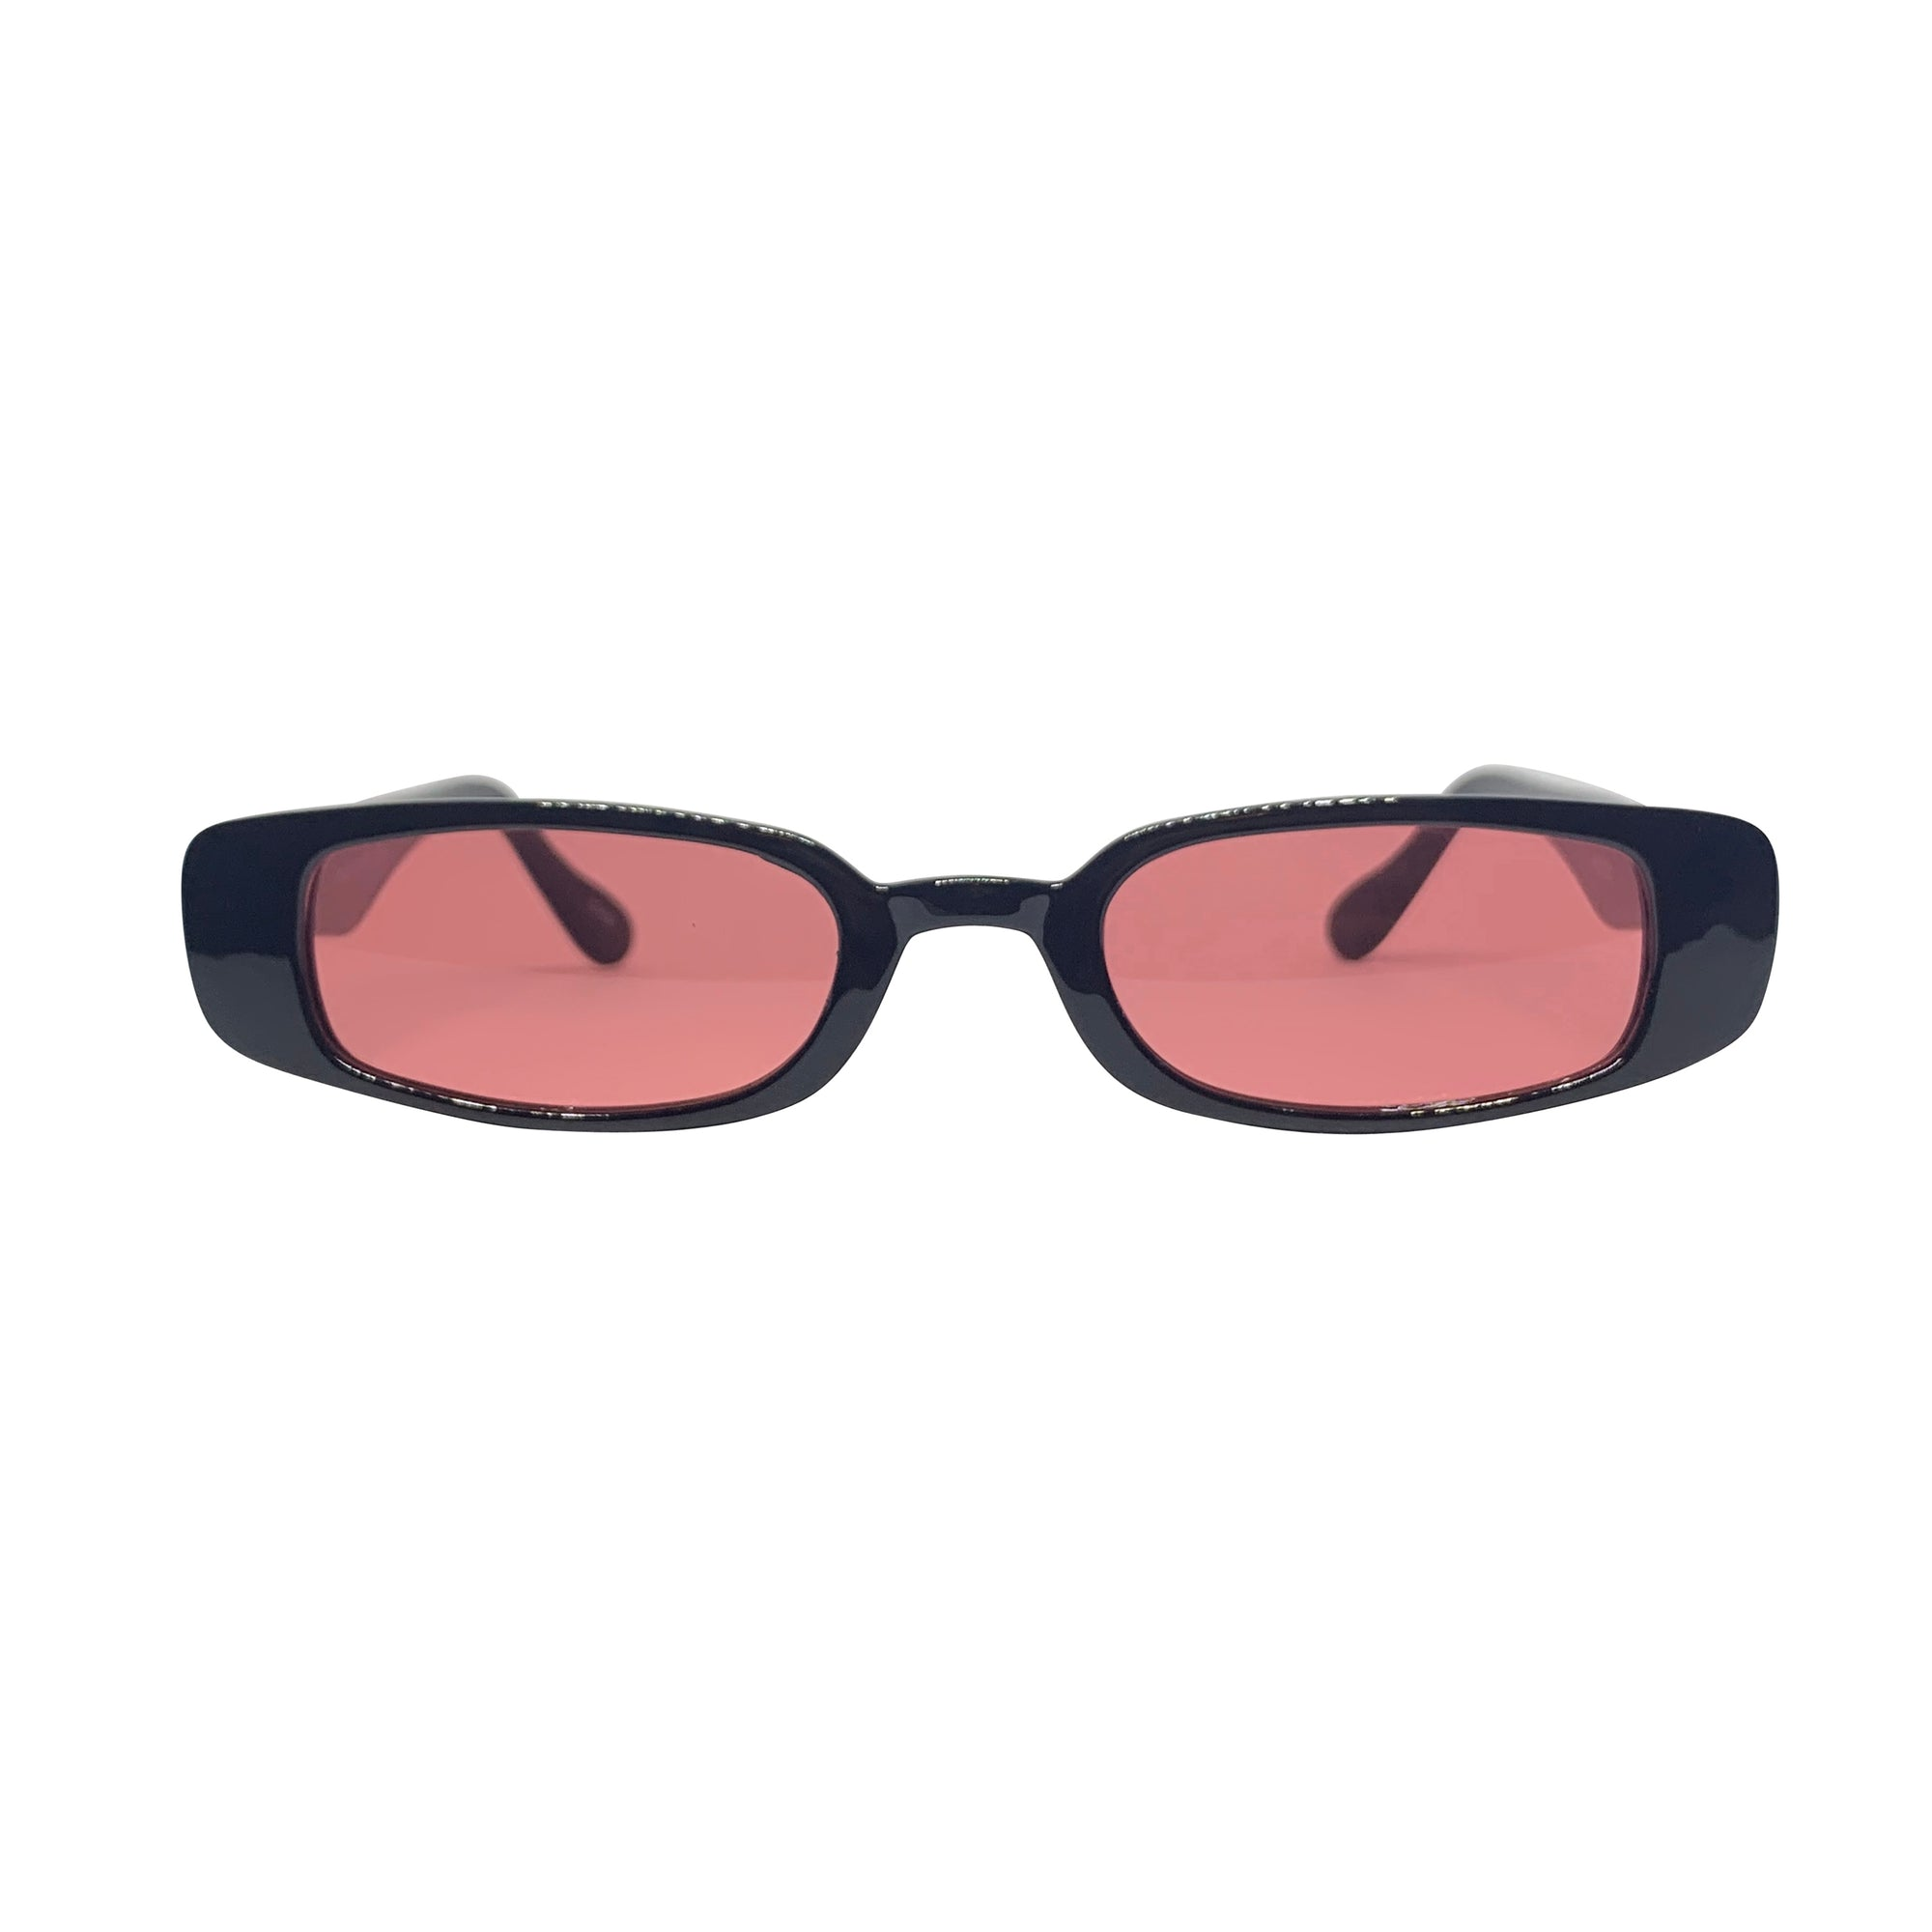 SKWAT Black and Pink 90s Style Sunnies